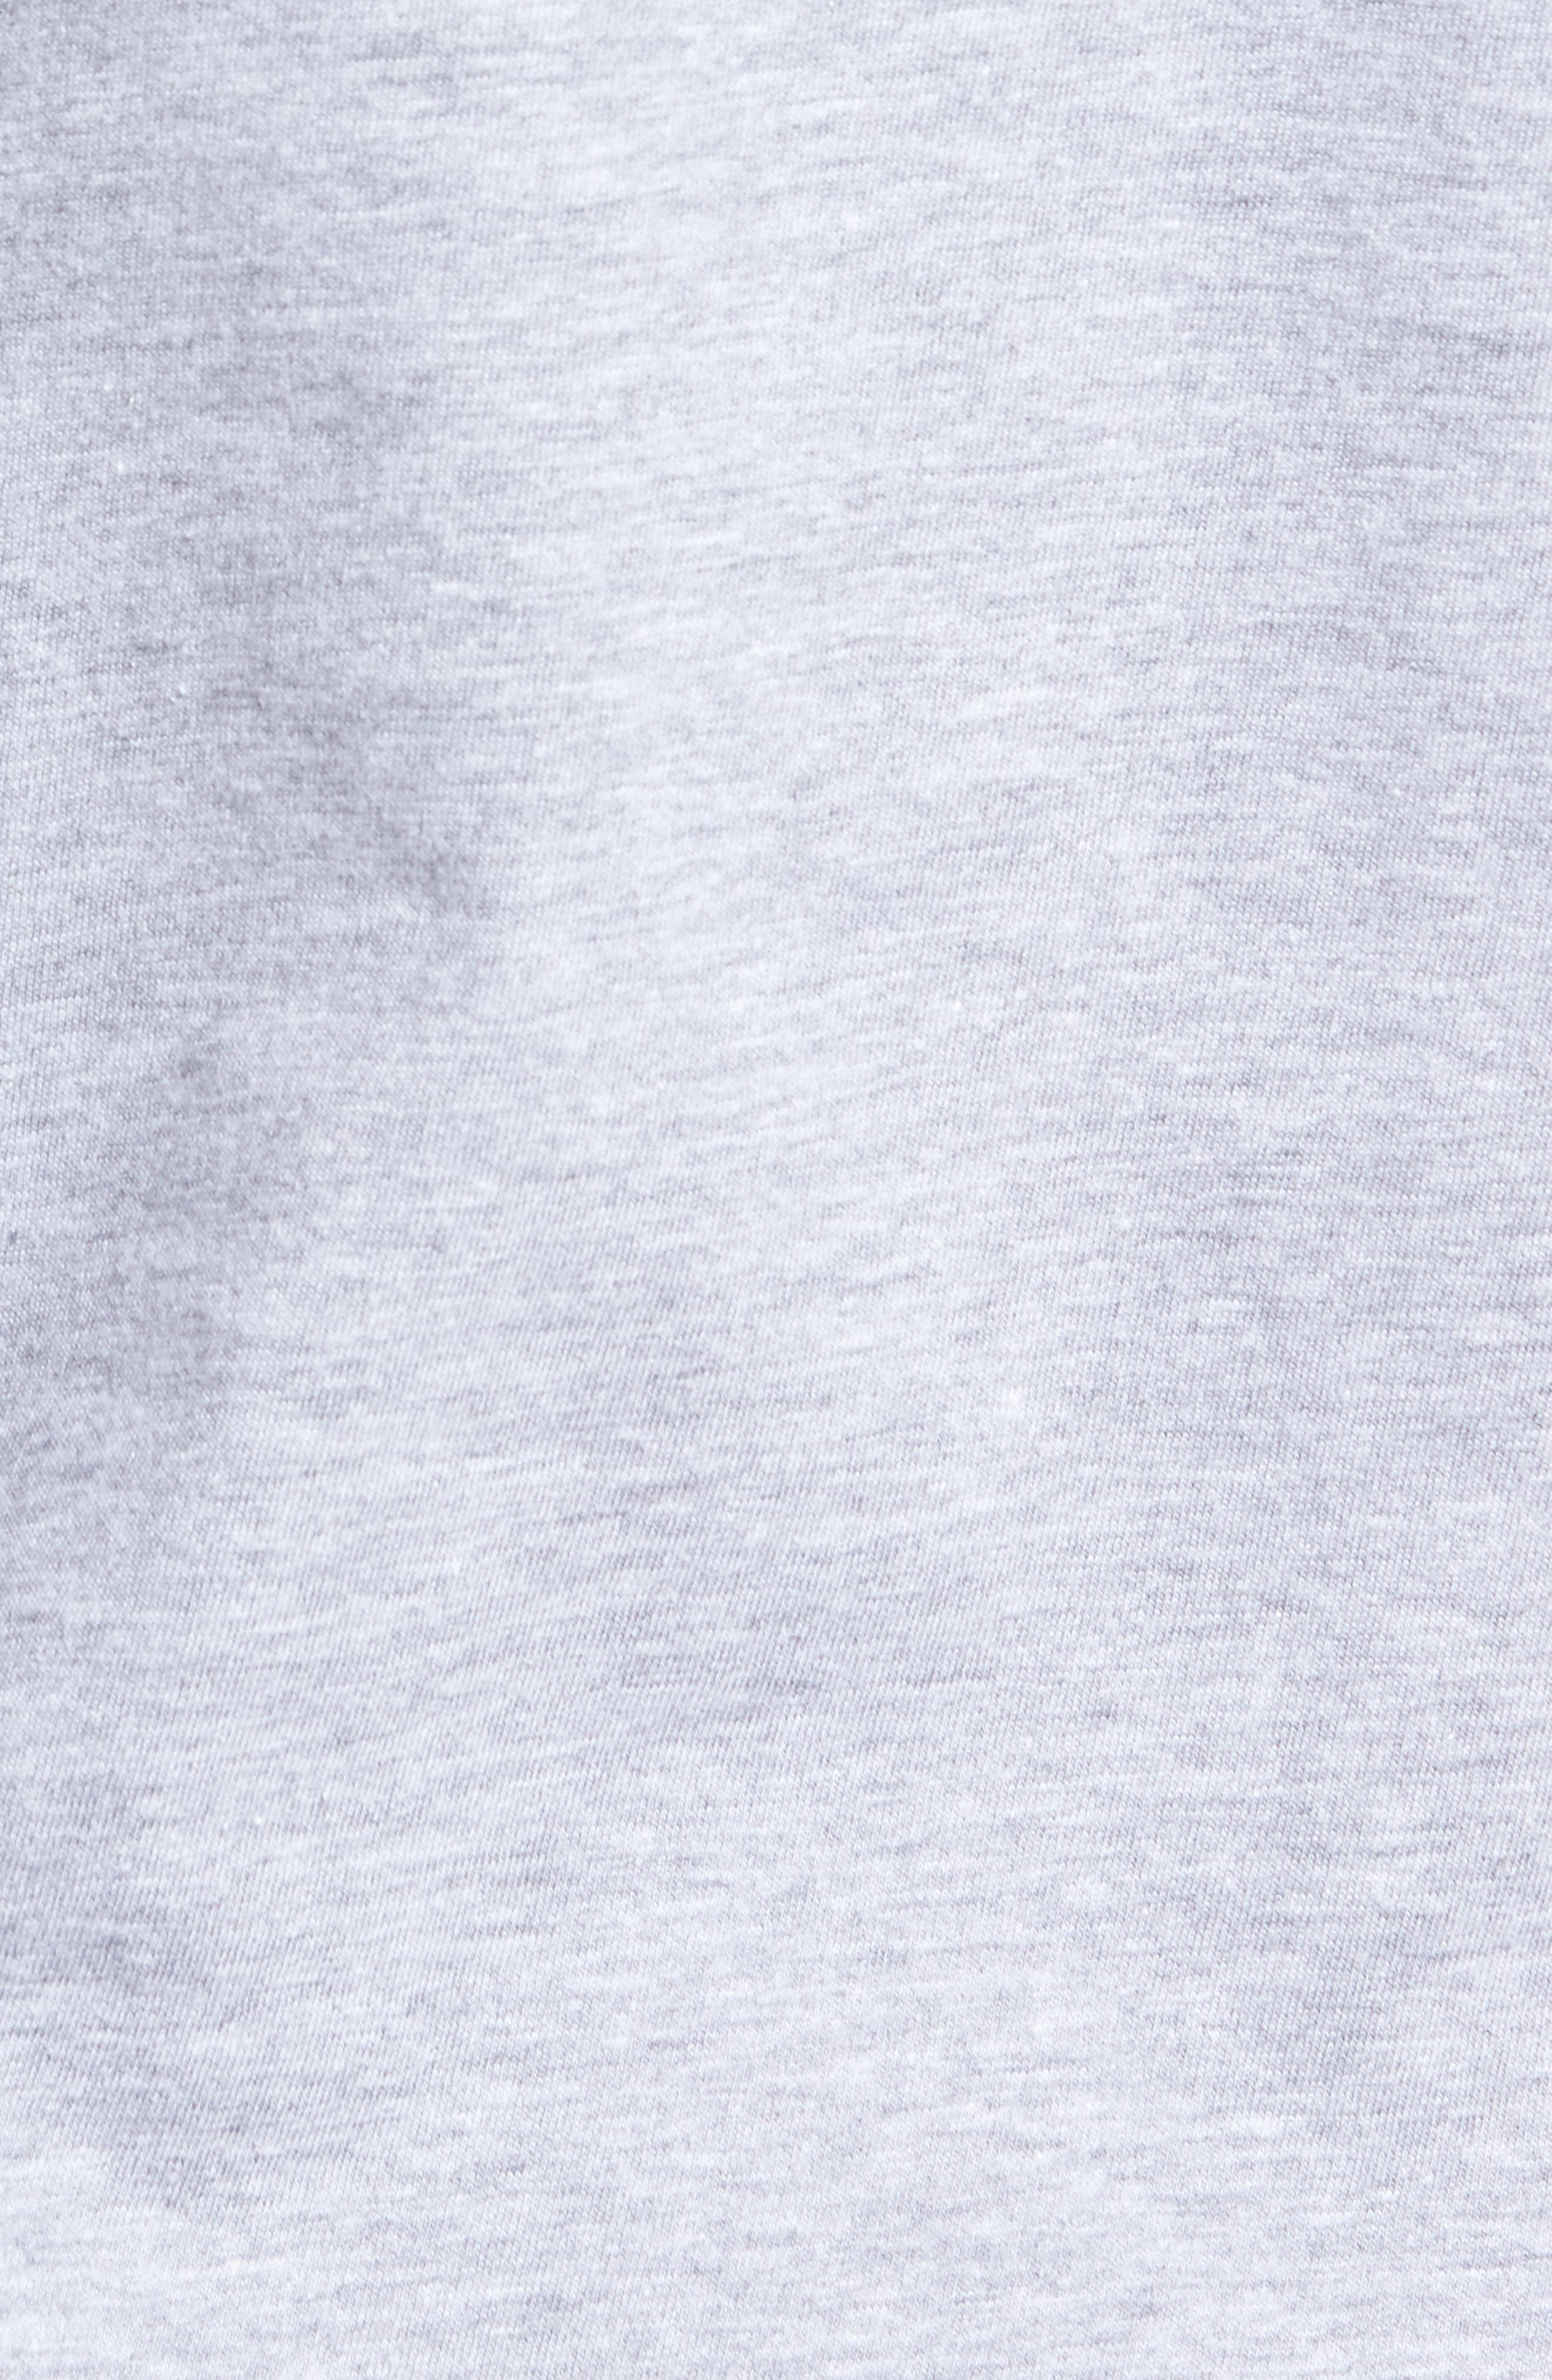 Budweiser<sup>®</sup> T-Shirt,                             Alternate thumbnail 5, color,                             Grey Bud Surfboards